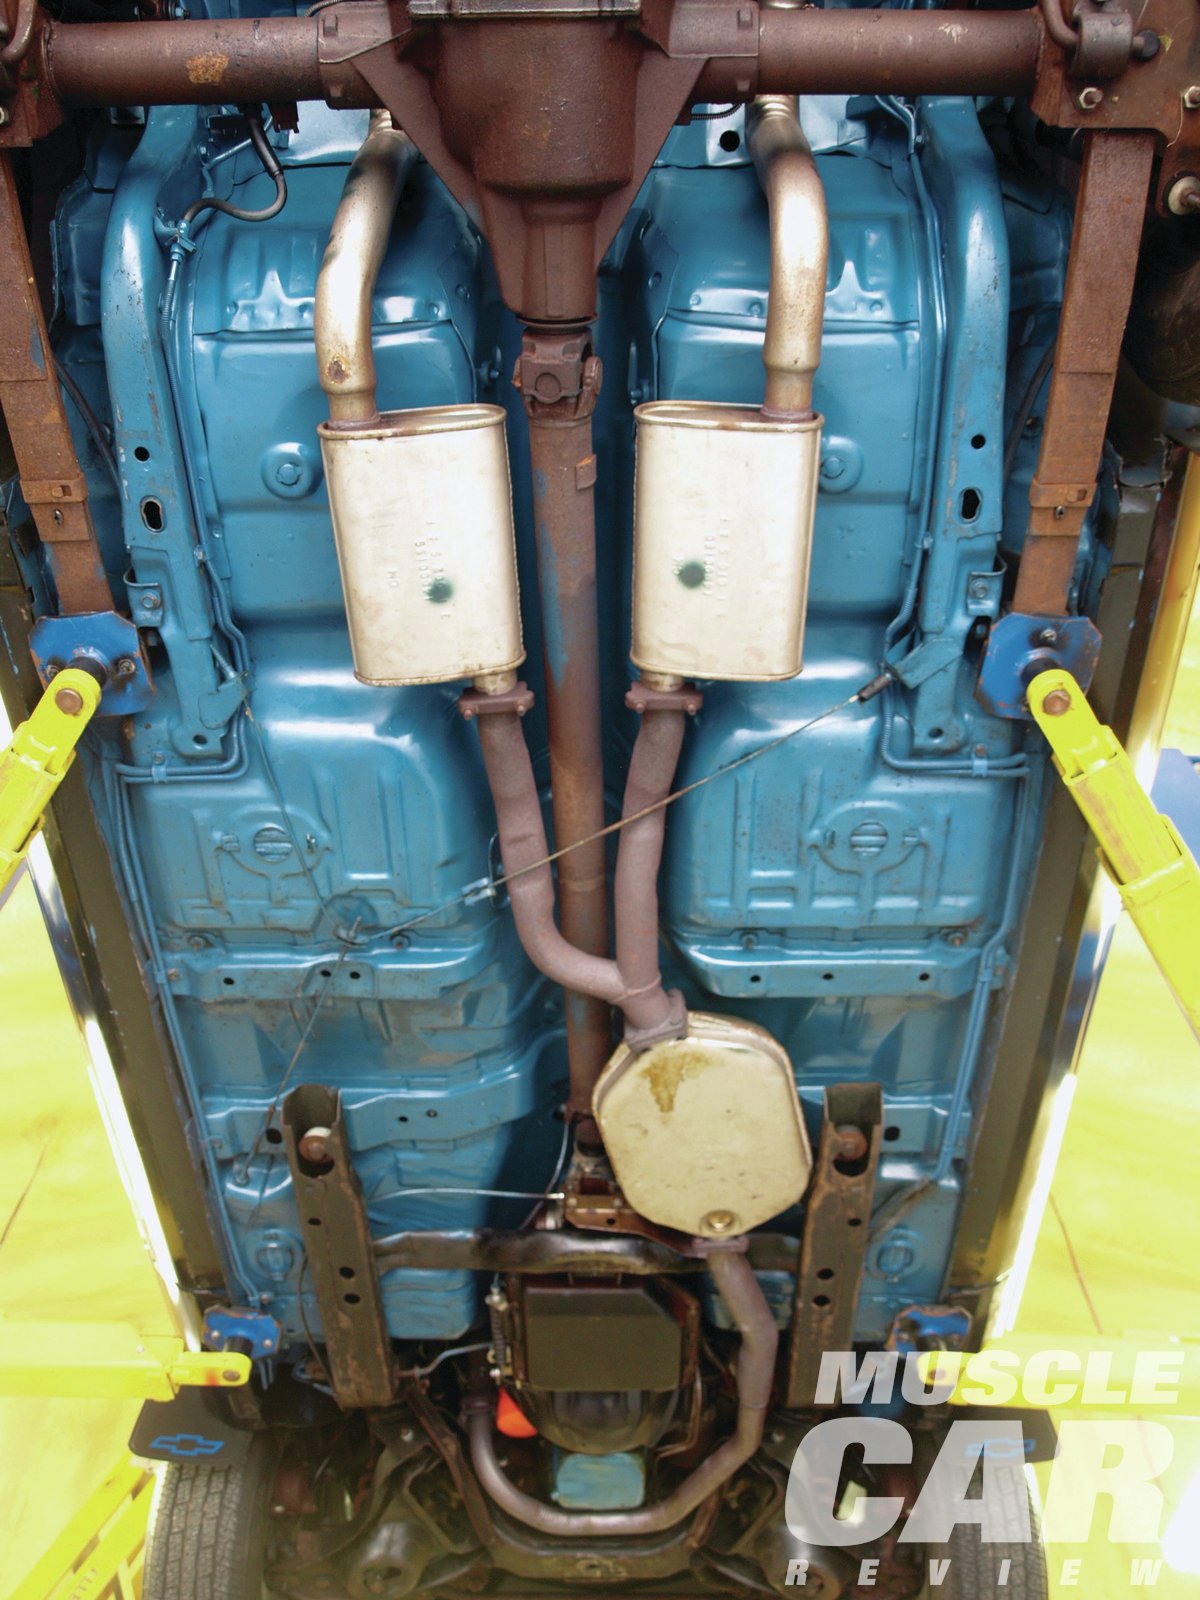 Here's a view of the paint the original owner applied to the undercarriage. Note how GM cut costs by routing the dual head pipes into a single pellet-bed-style catalytic converter. Notice, too, how the factory welded the mufflers to the tailpipes. Correctly restored, these need to be presented as one-piece assemblies.